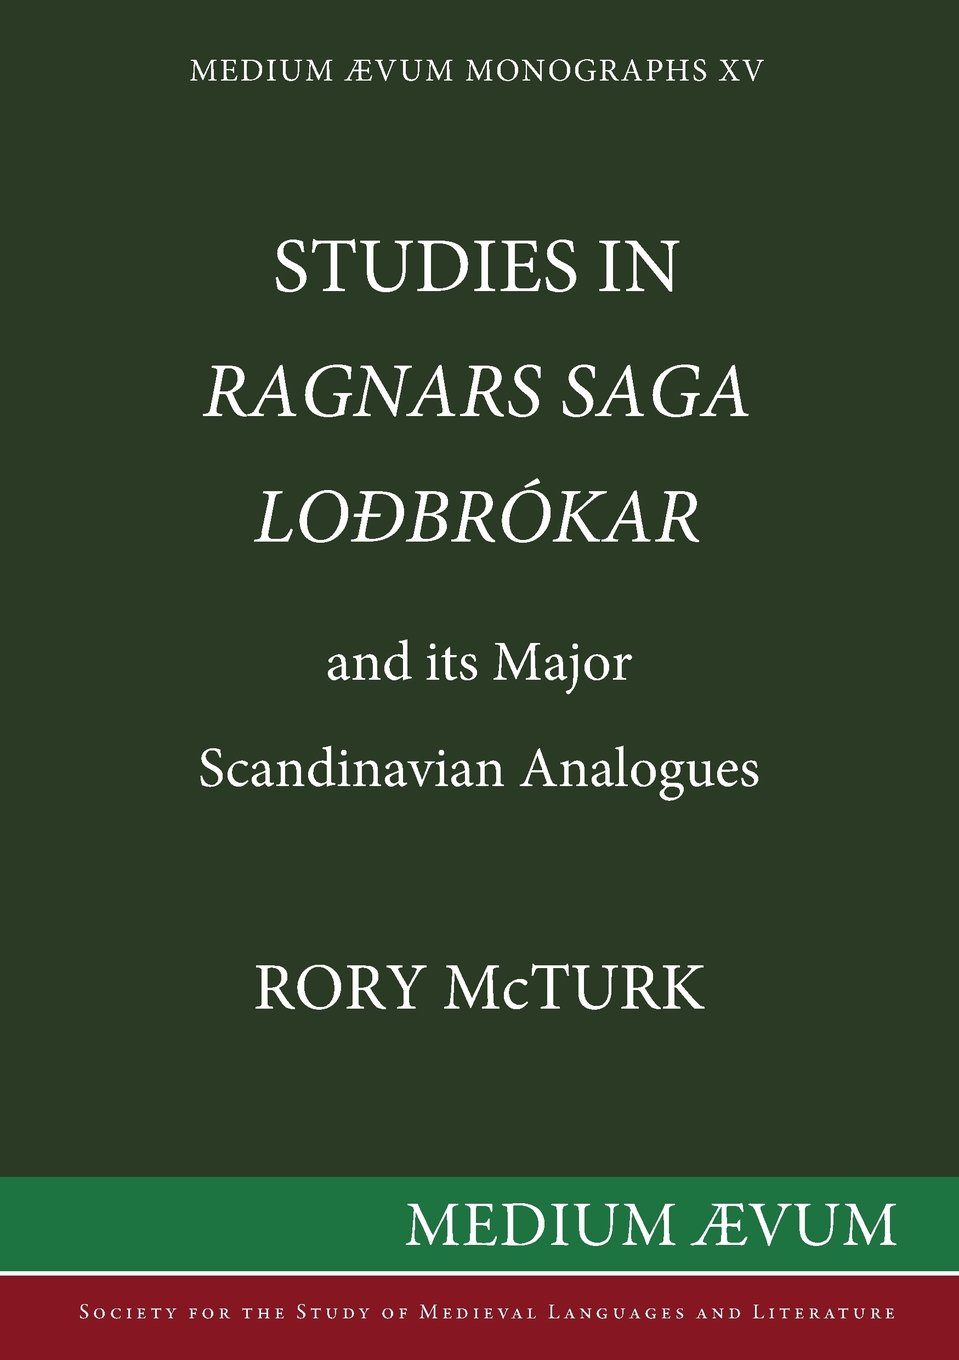 Studies in Ragnars Saga Lodbrʹokar and its major Scandinavian analogues